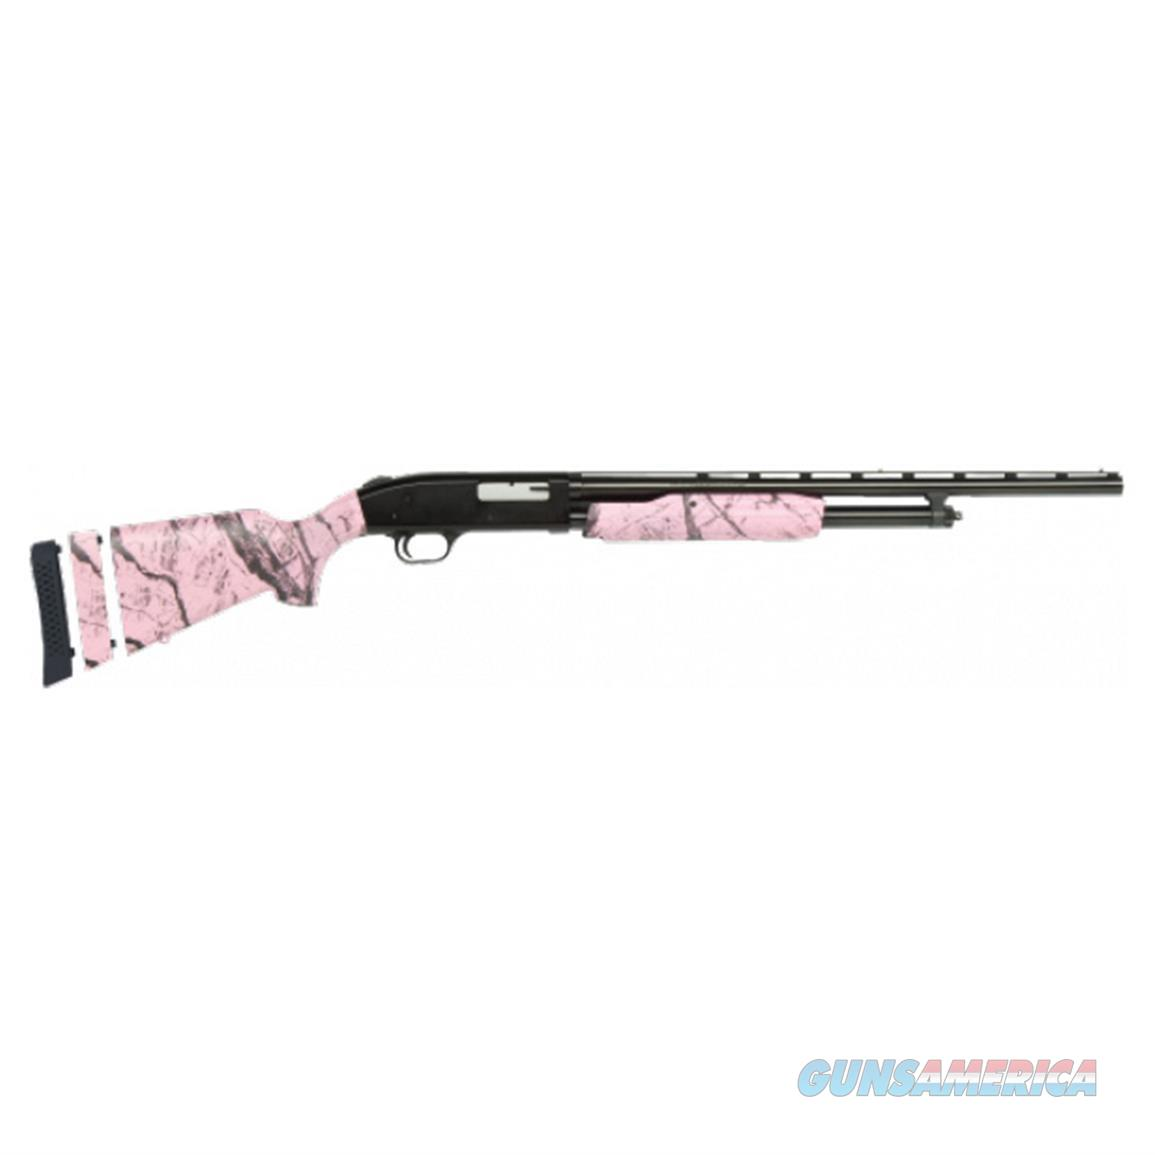 "Mossberg 500 Youth Super Bantam, 20 Ga, Pink Marble, Mfg# 54147, 22"" barrel, NIB  Guns > Shotguns > Mossberg Shotguns > Pump > Sporting"